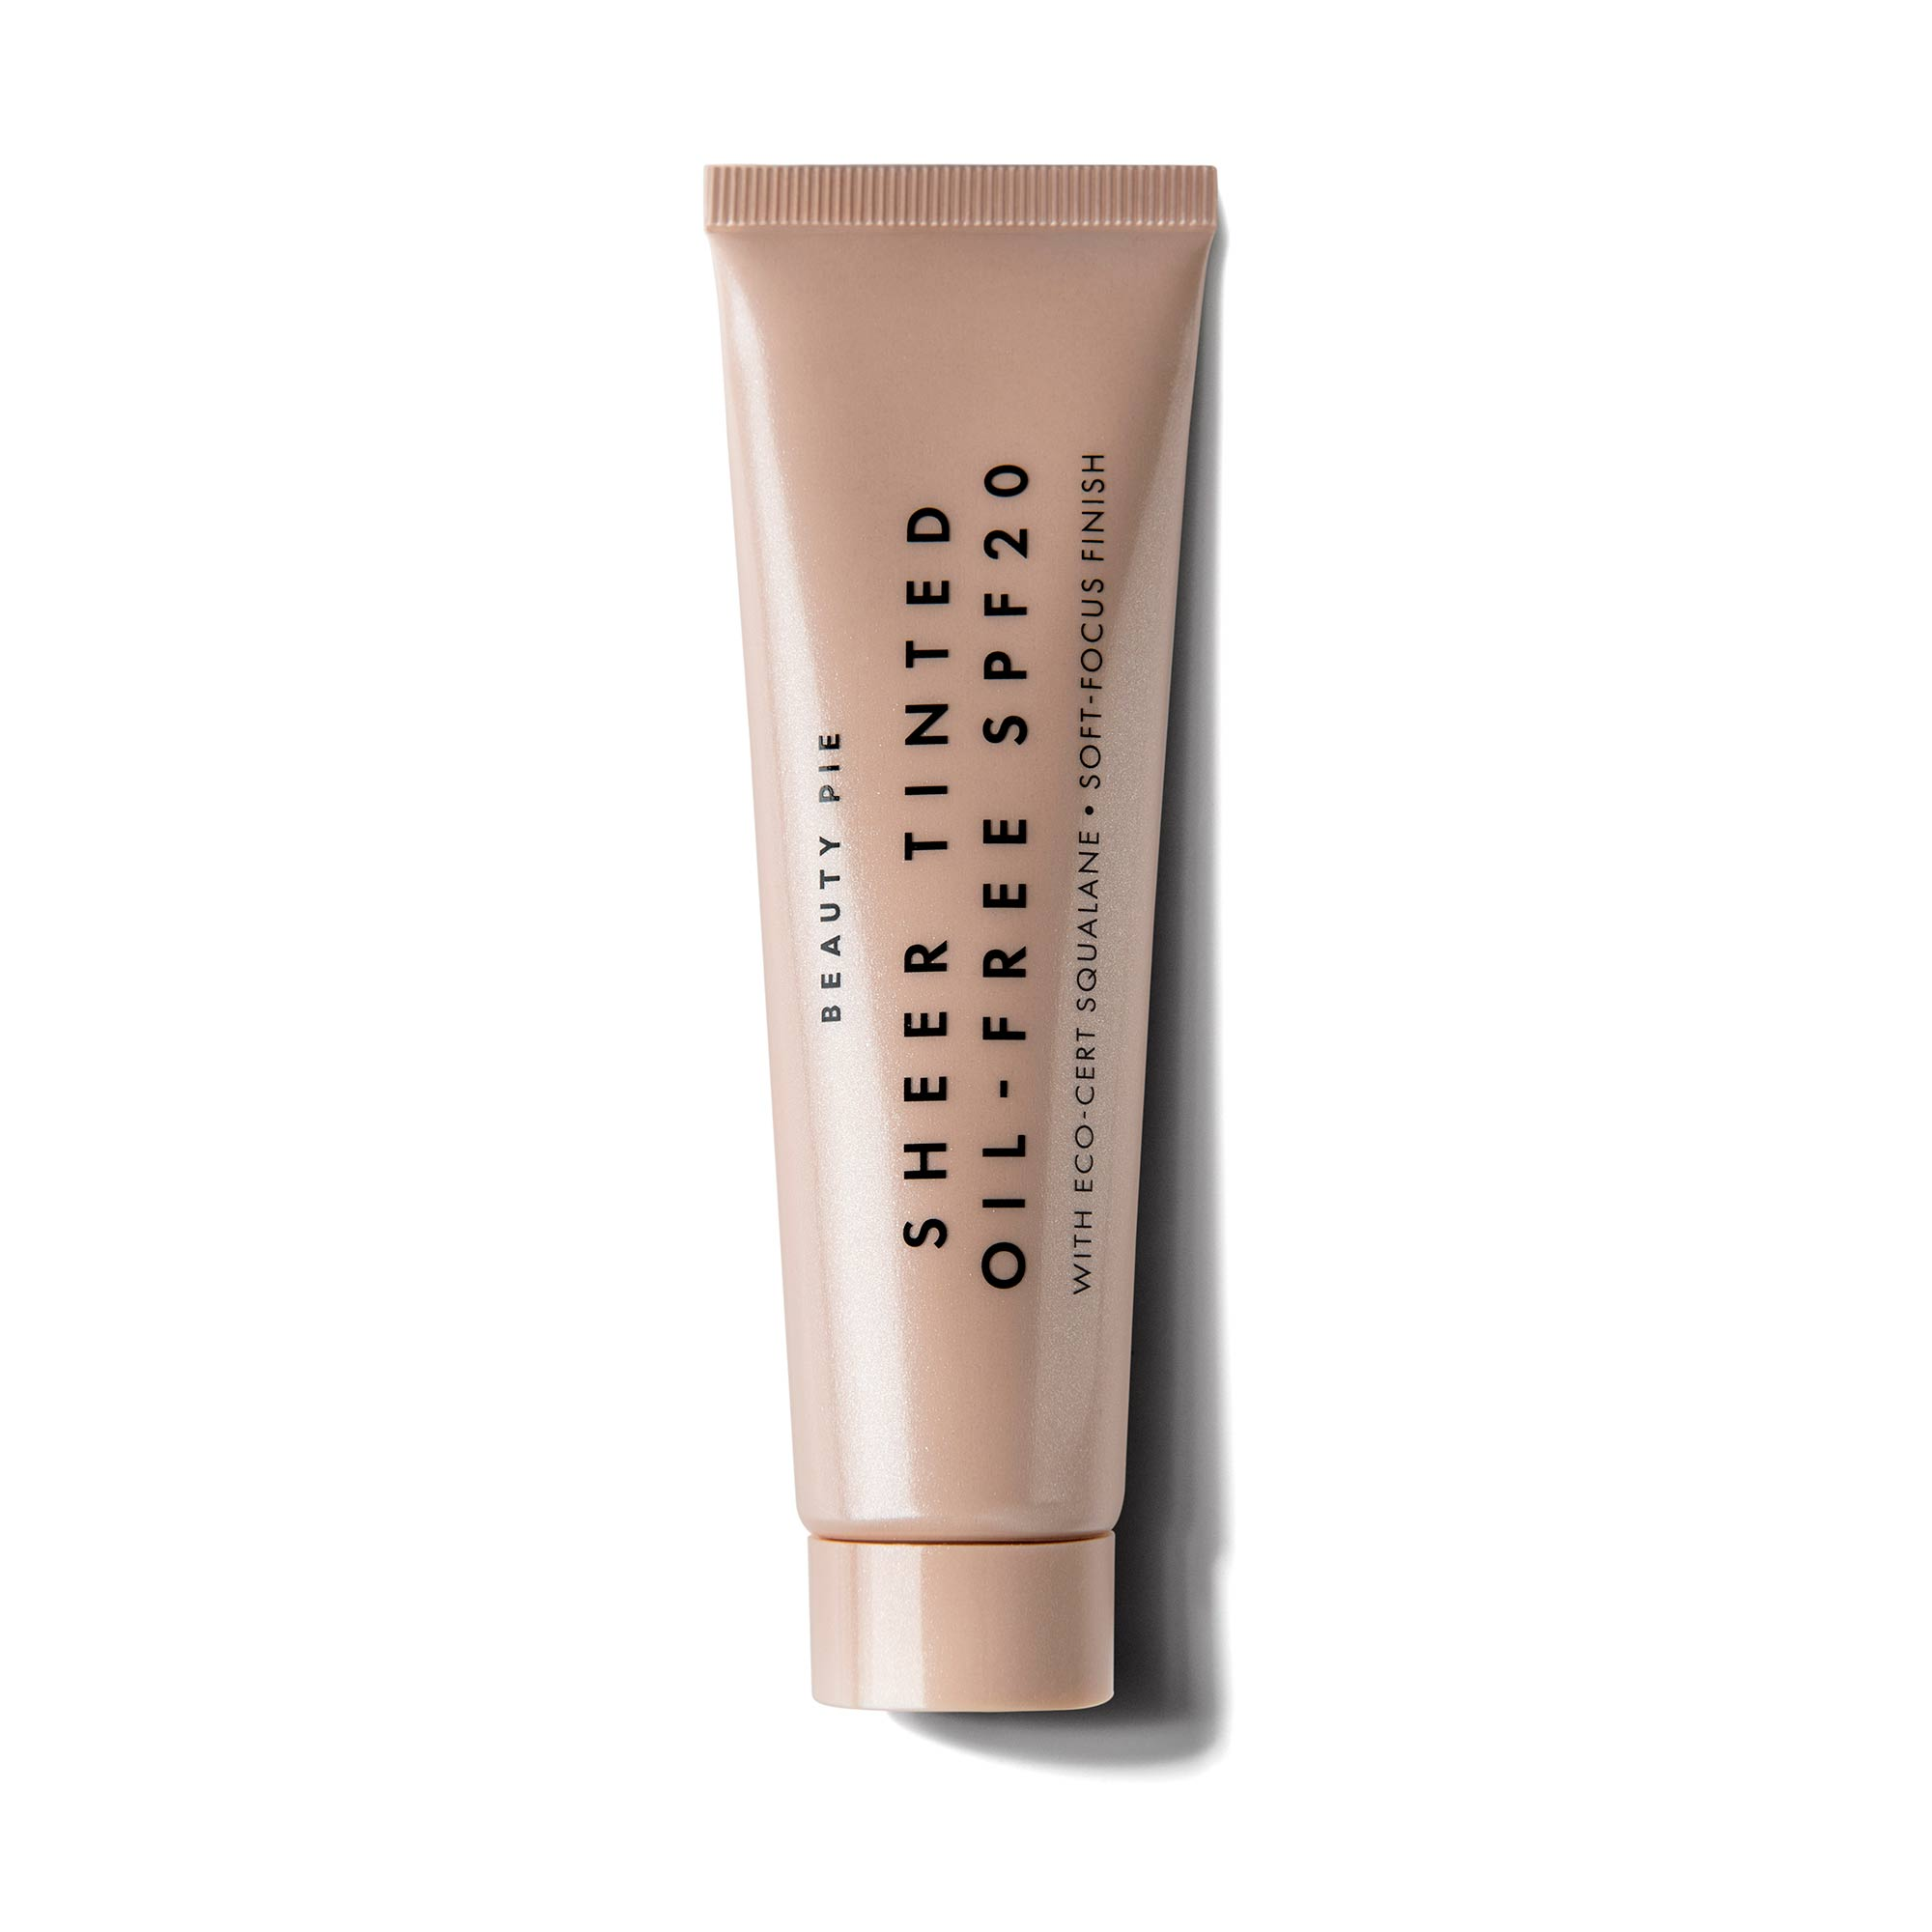 Super Healthy Skin™ Tinted SPF20 in Light by Beauty Pie